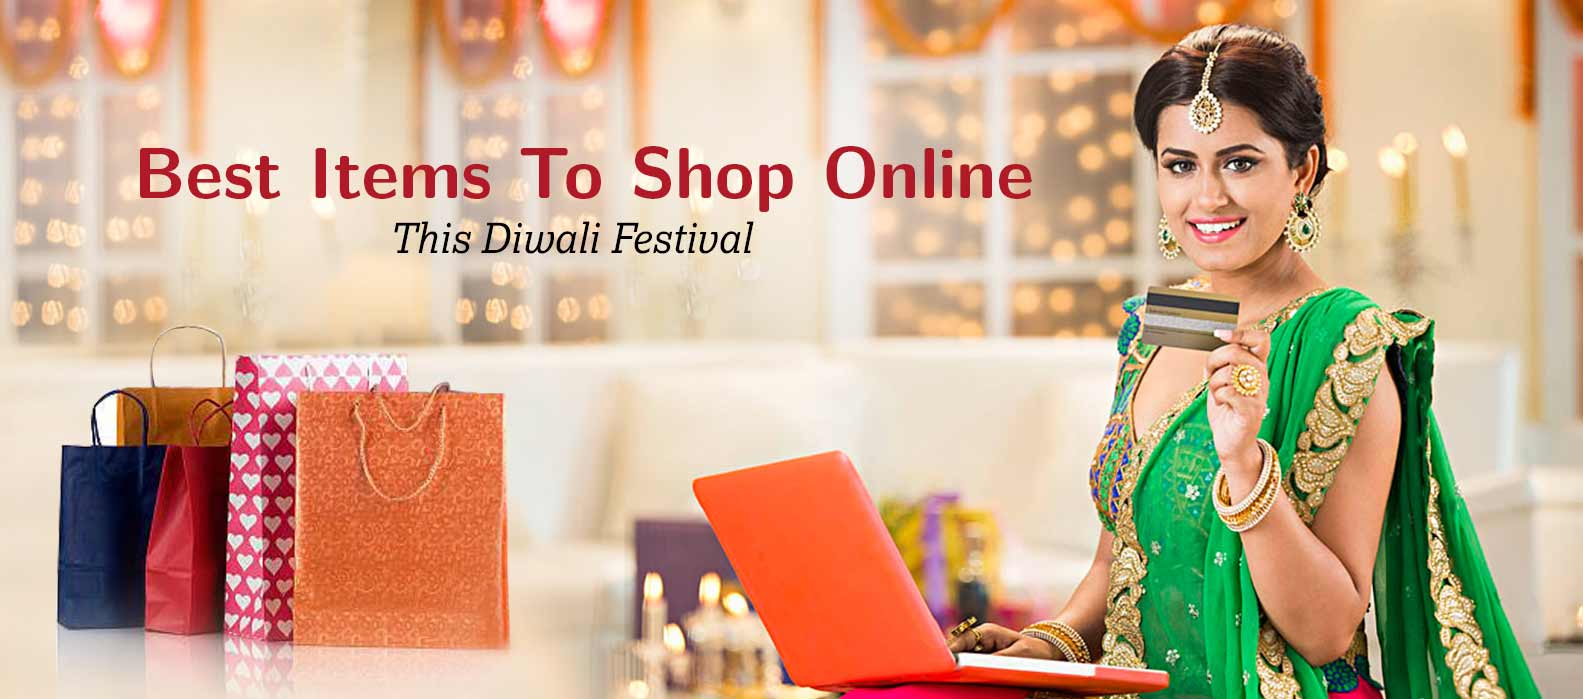 Best Items To Shop Online This Diwali Festival